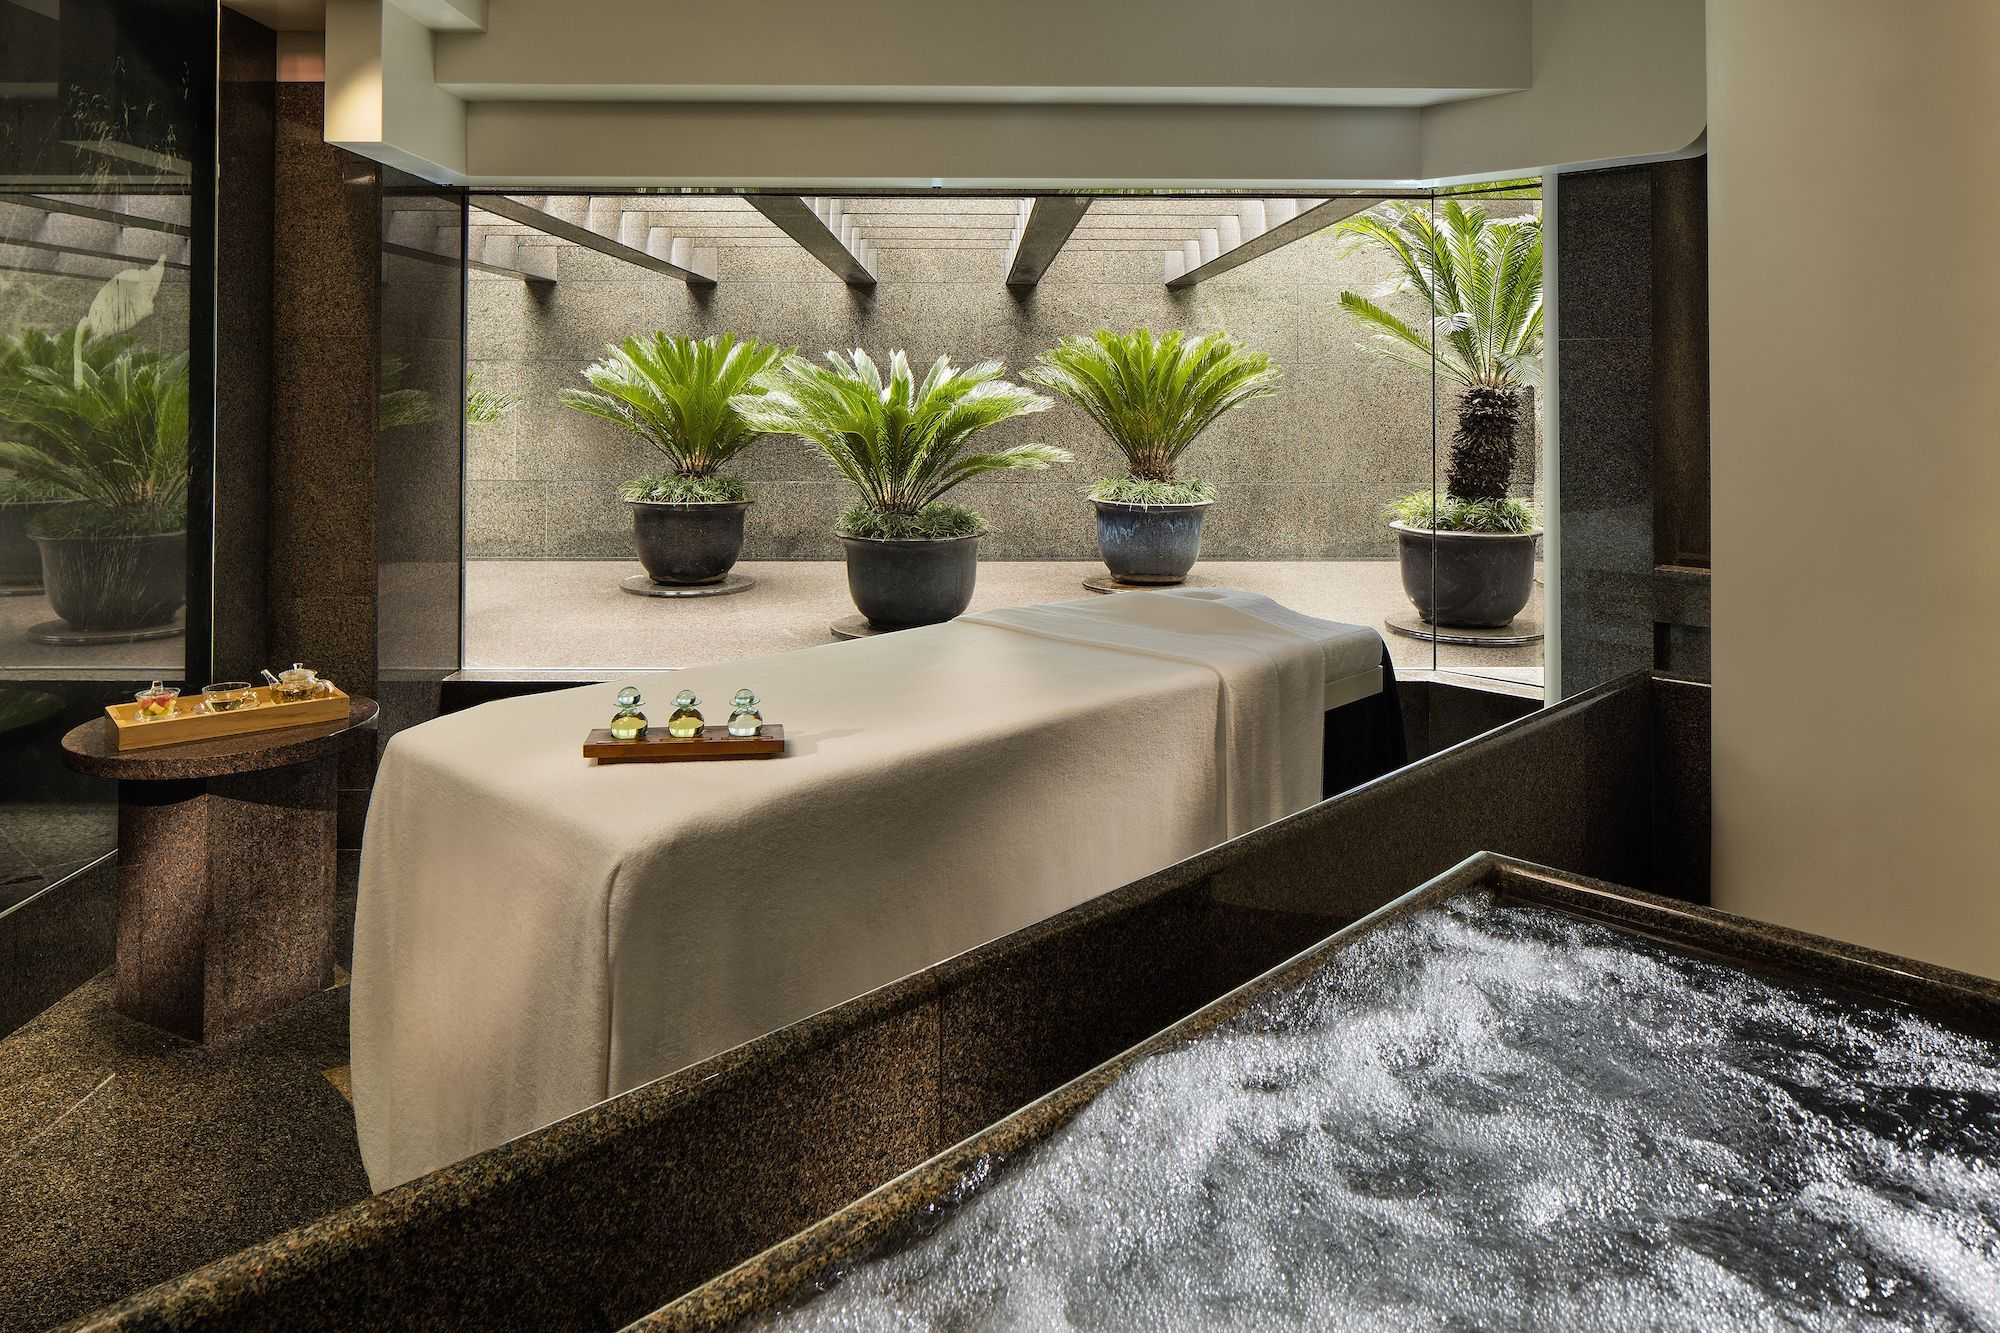 The Best Hong Kong Facial Treatments To Try This Season